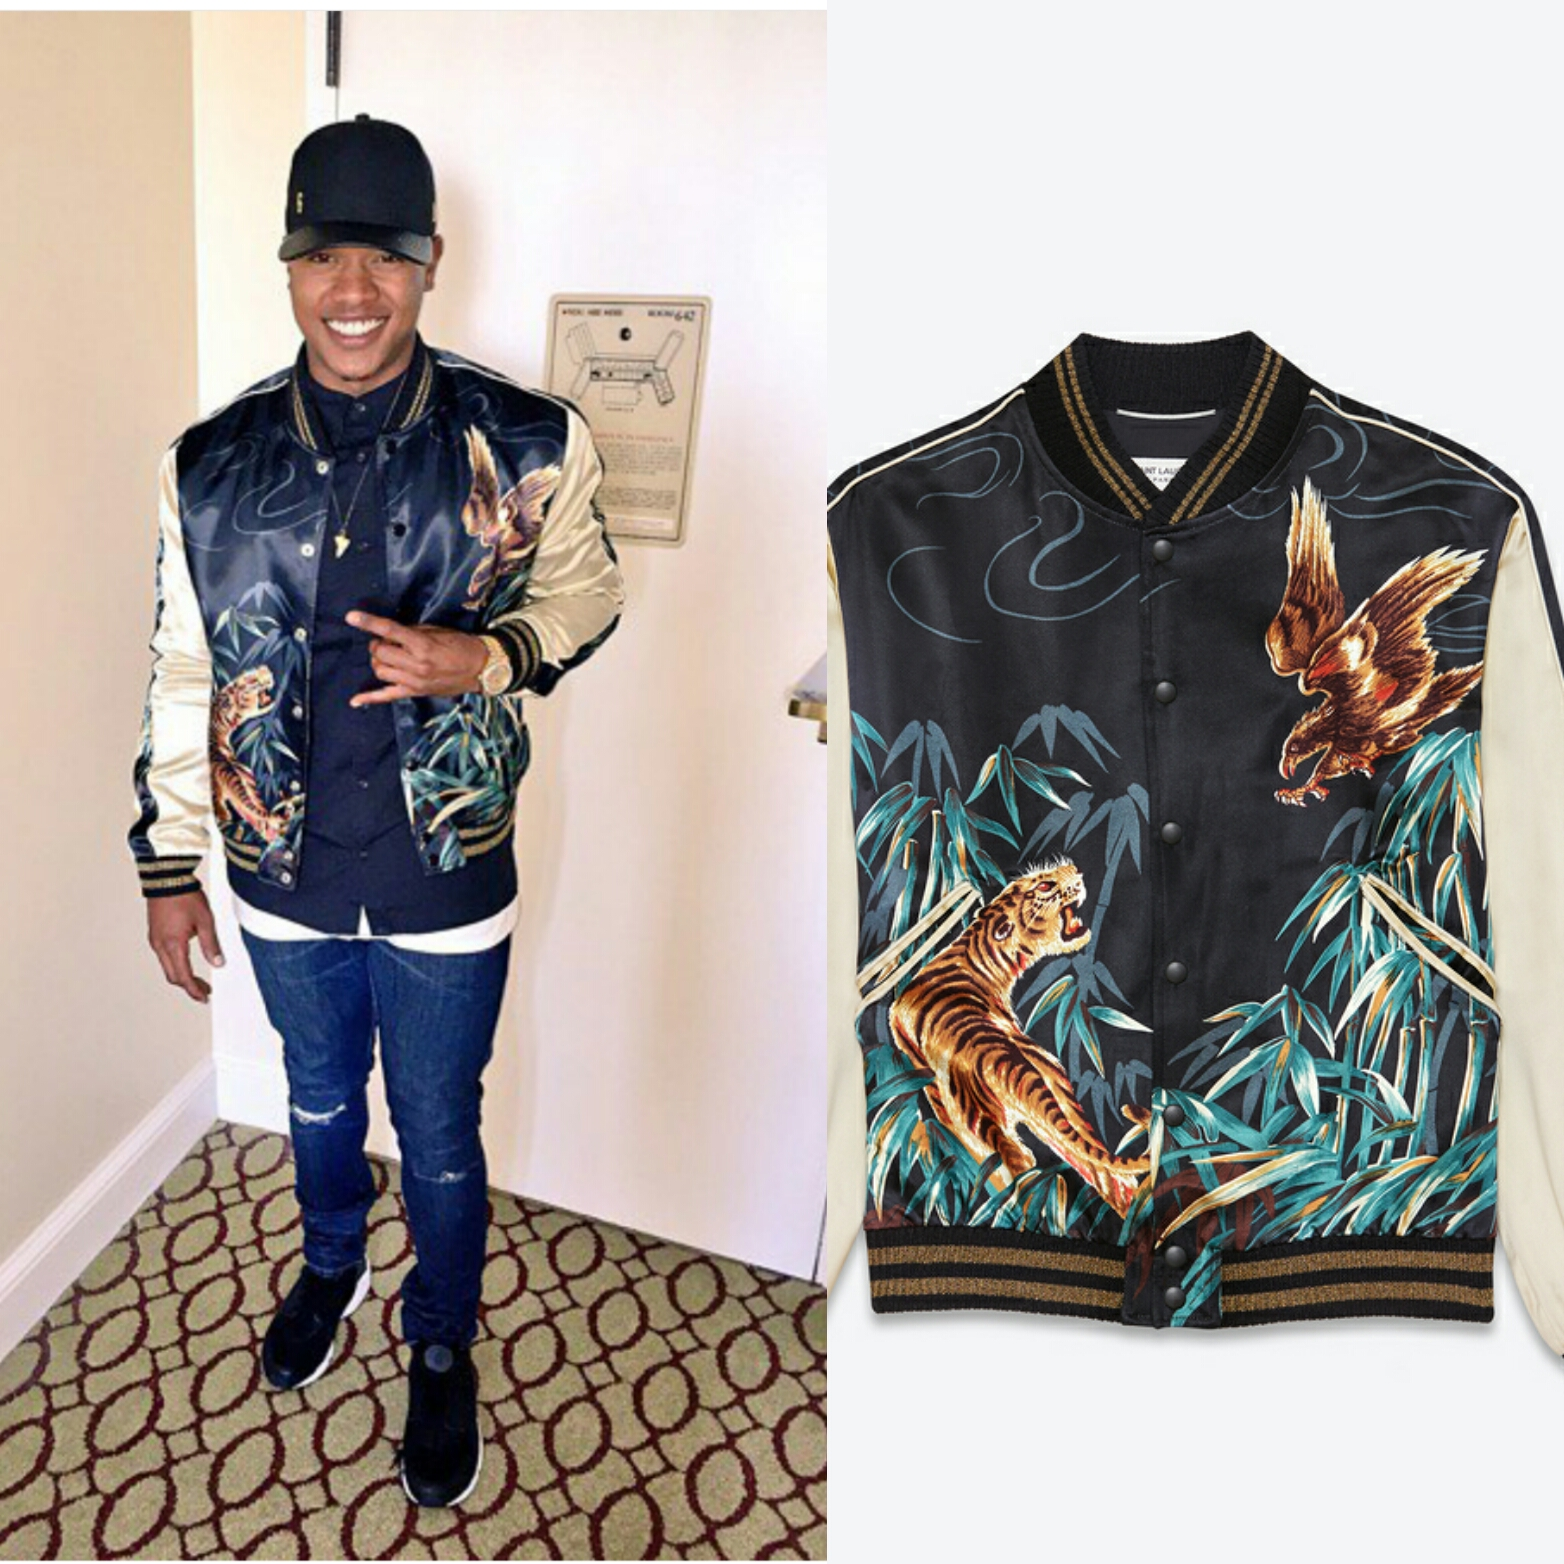 Marcus-stroman-saint-laurent-jacket-